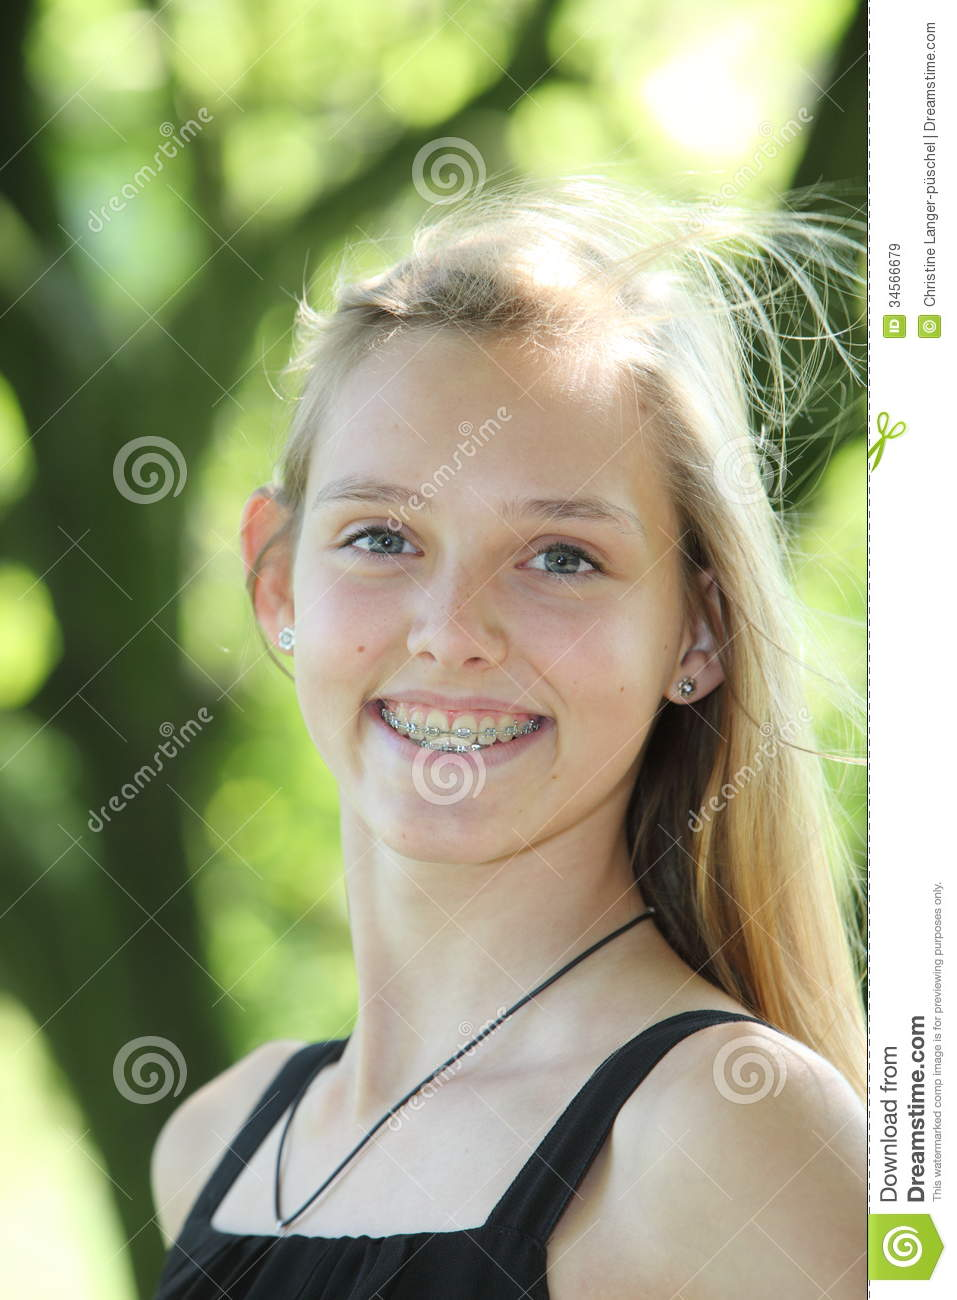 Vivacious Young Girl With Dental Braces Royalty Free Stock